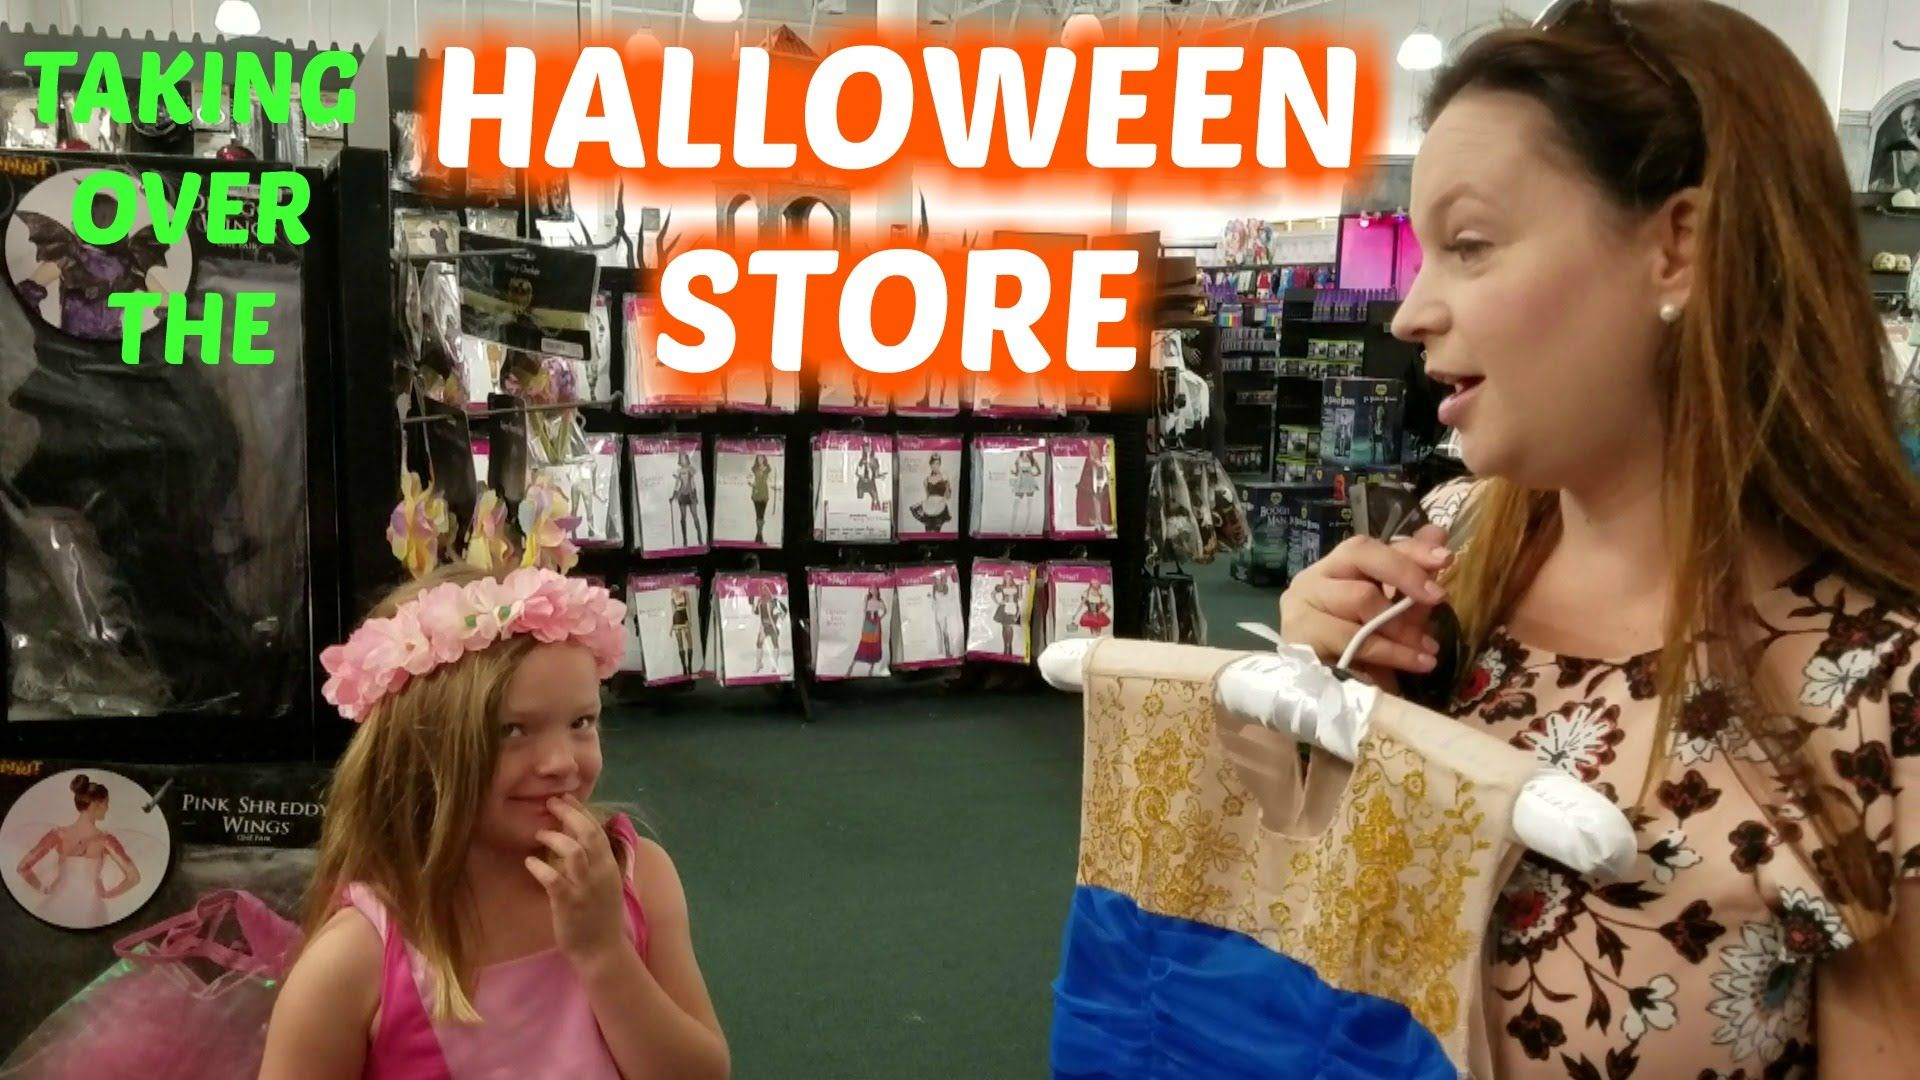 We Took Over The Halloween Store The Kids Had So Much